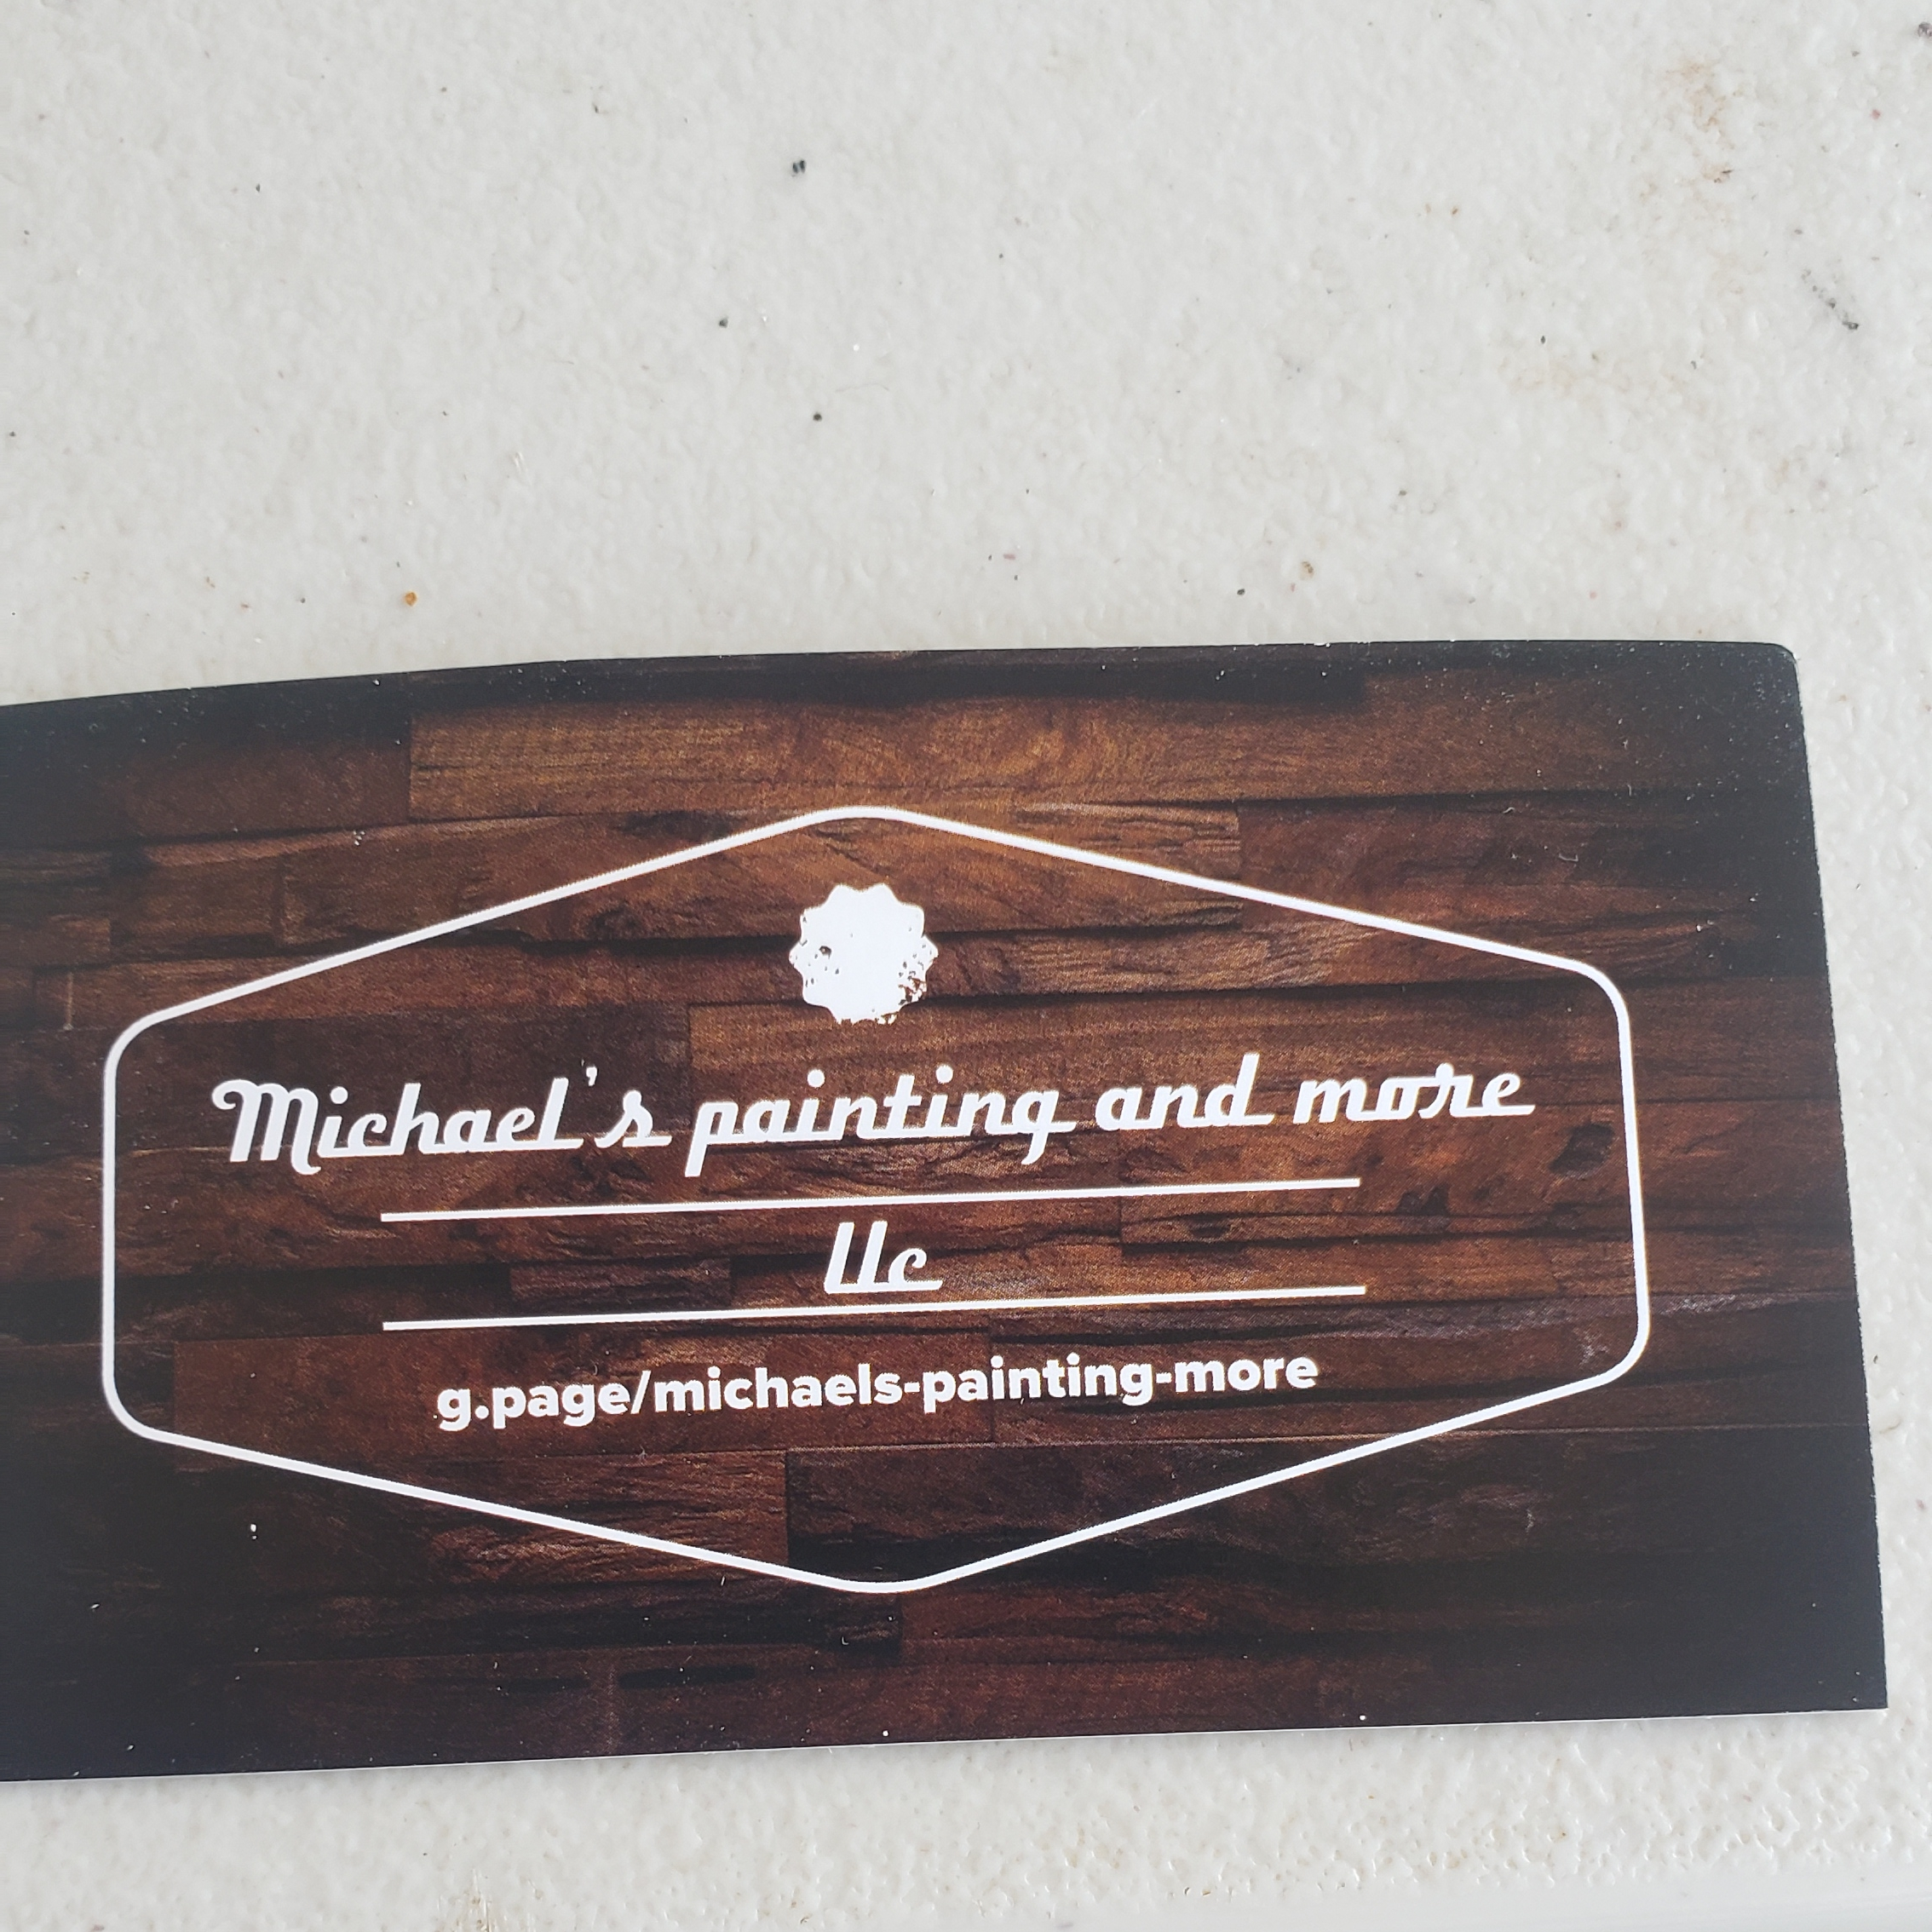 Michaels painting & more